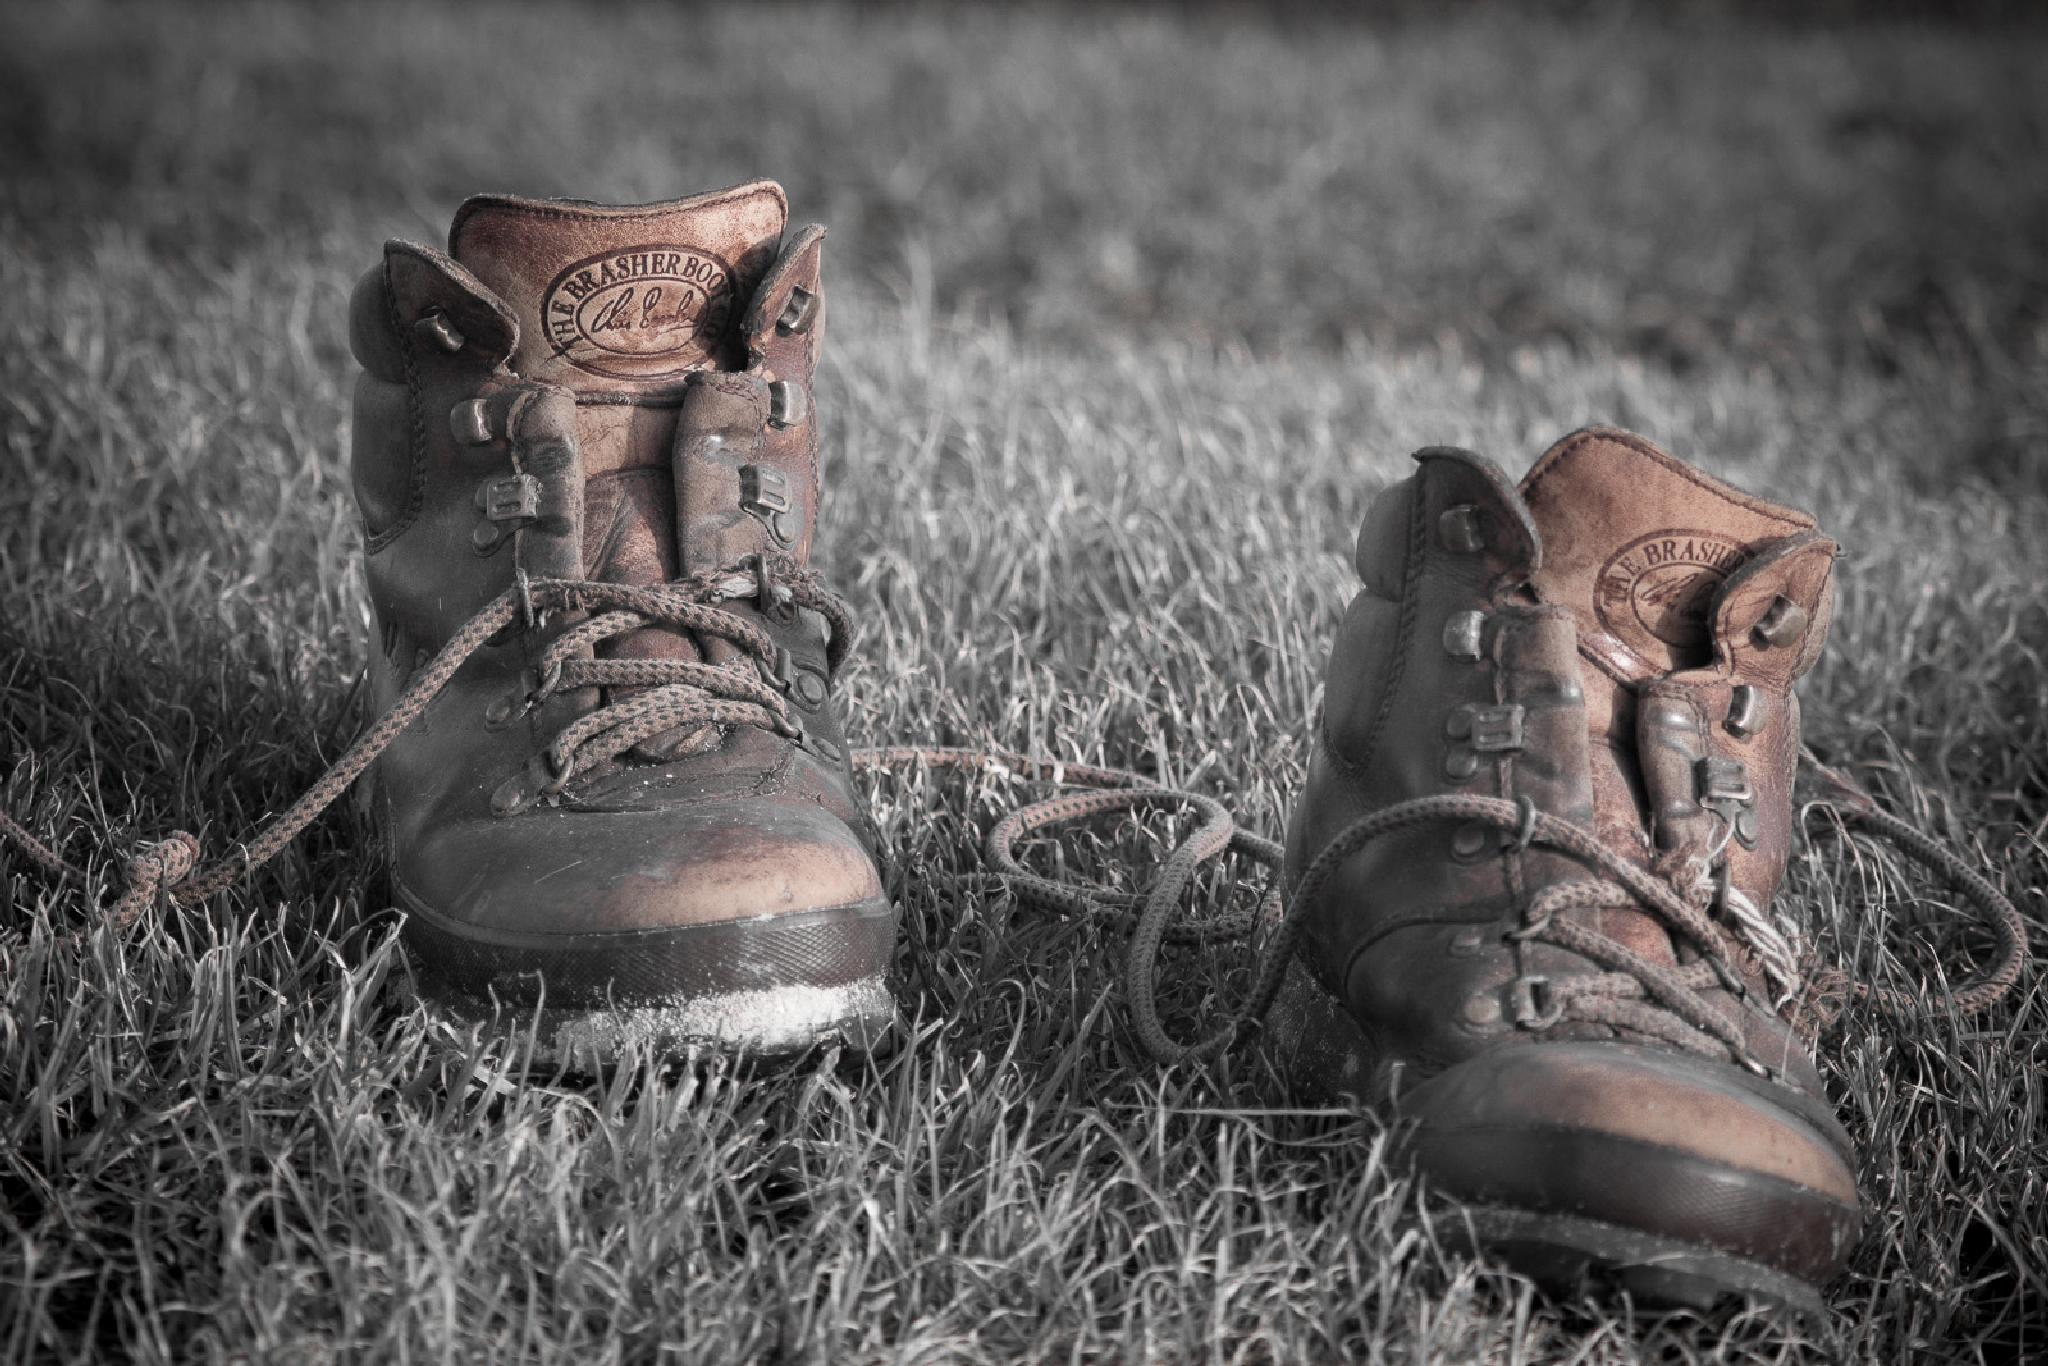 These boots were made for walking by isegarth